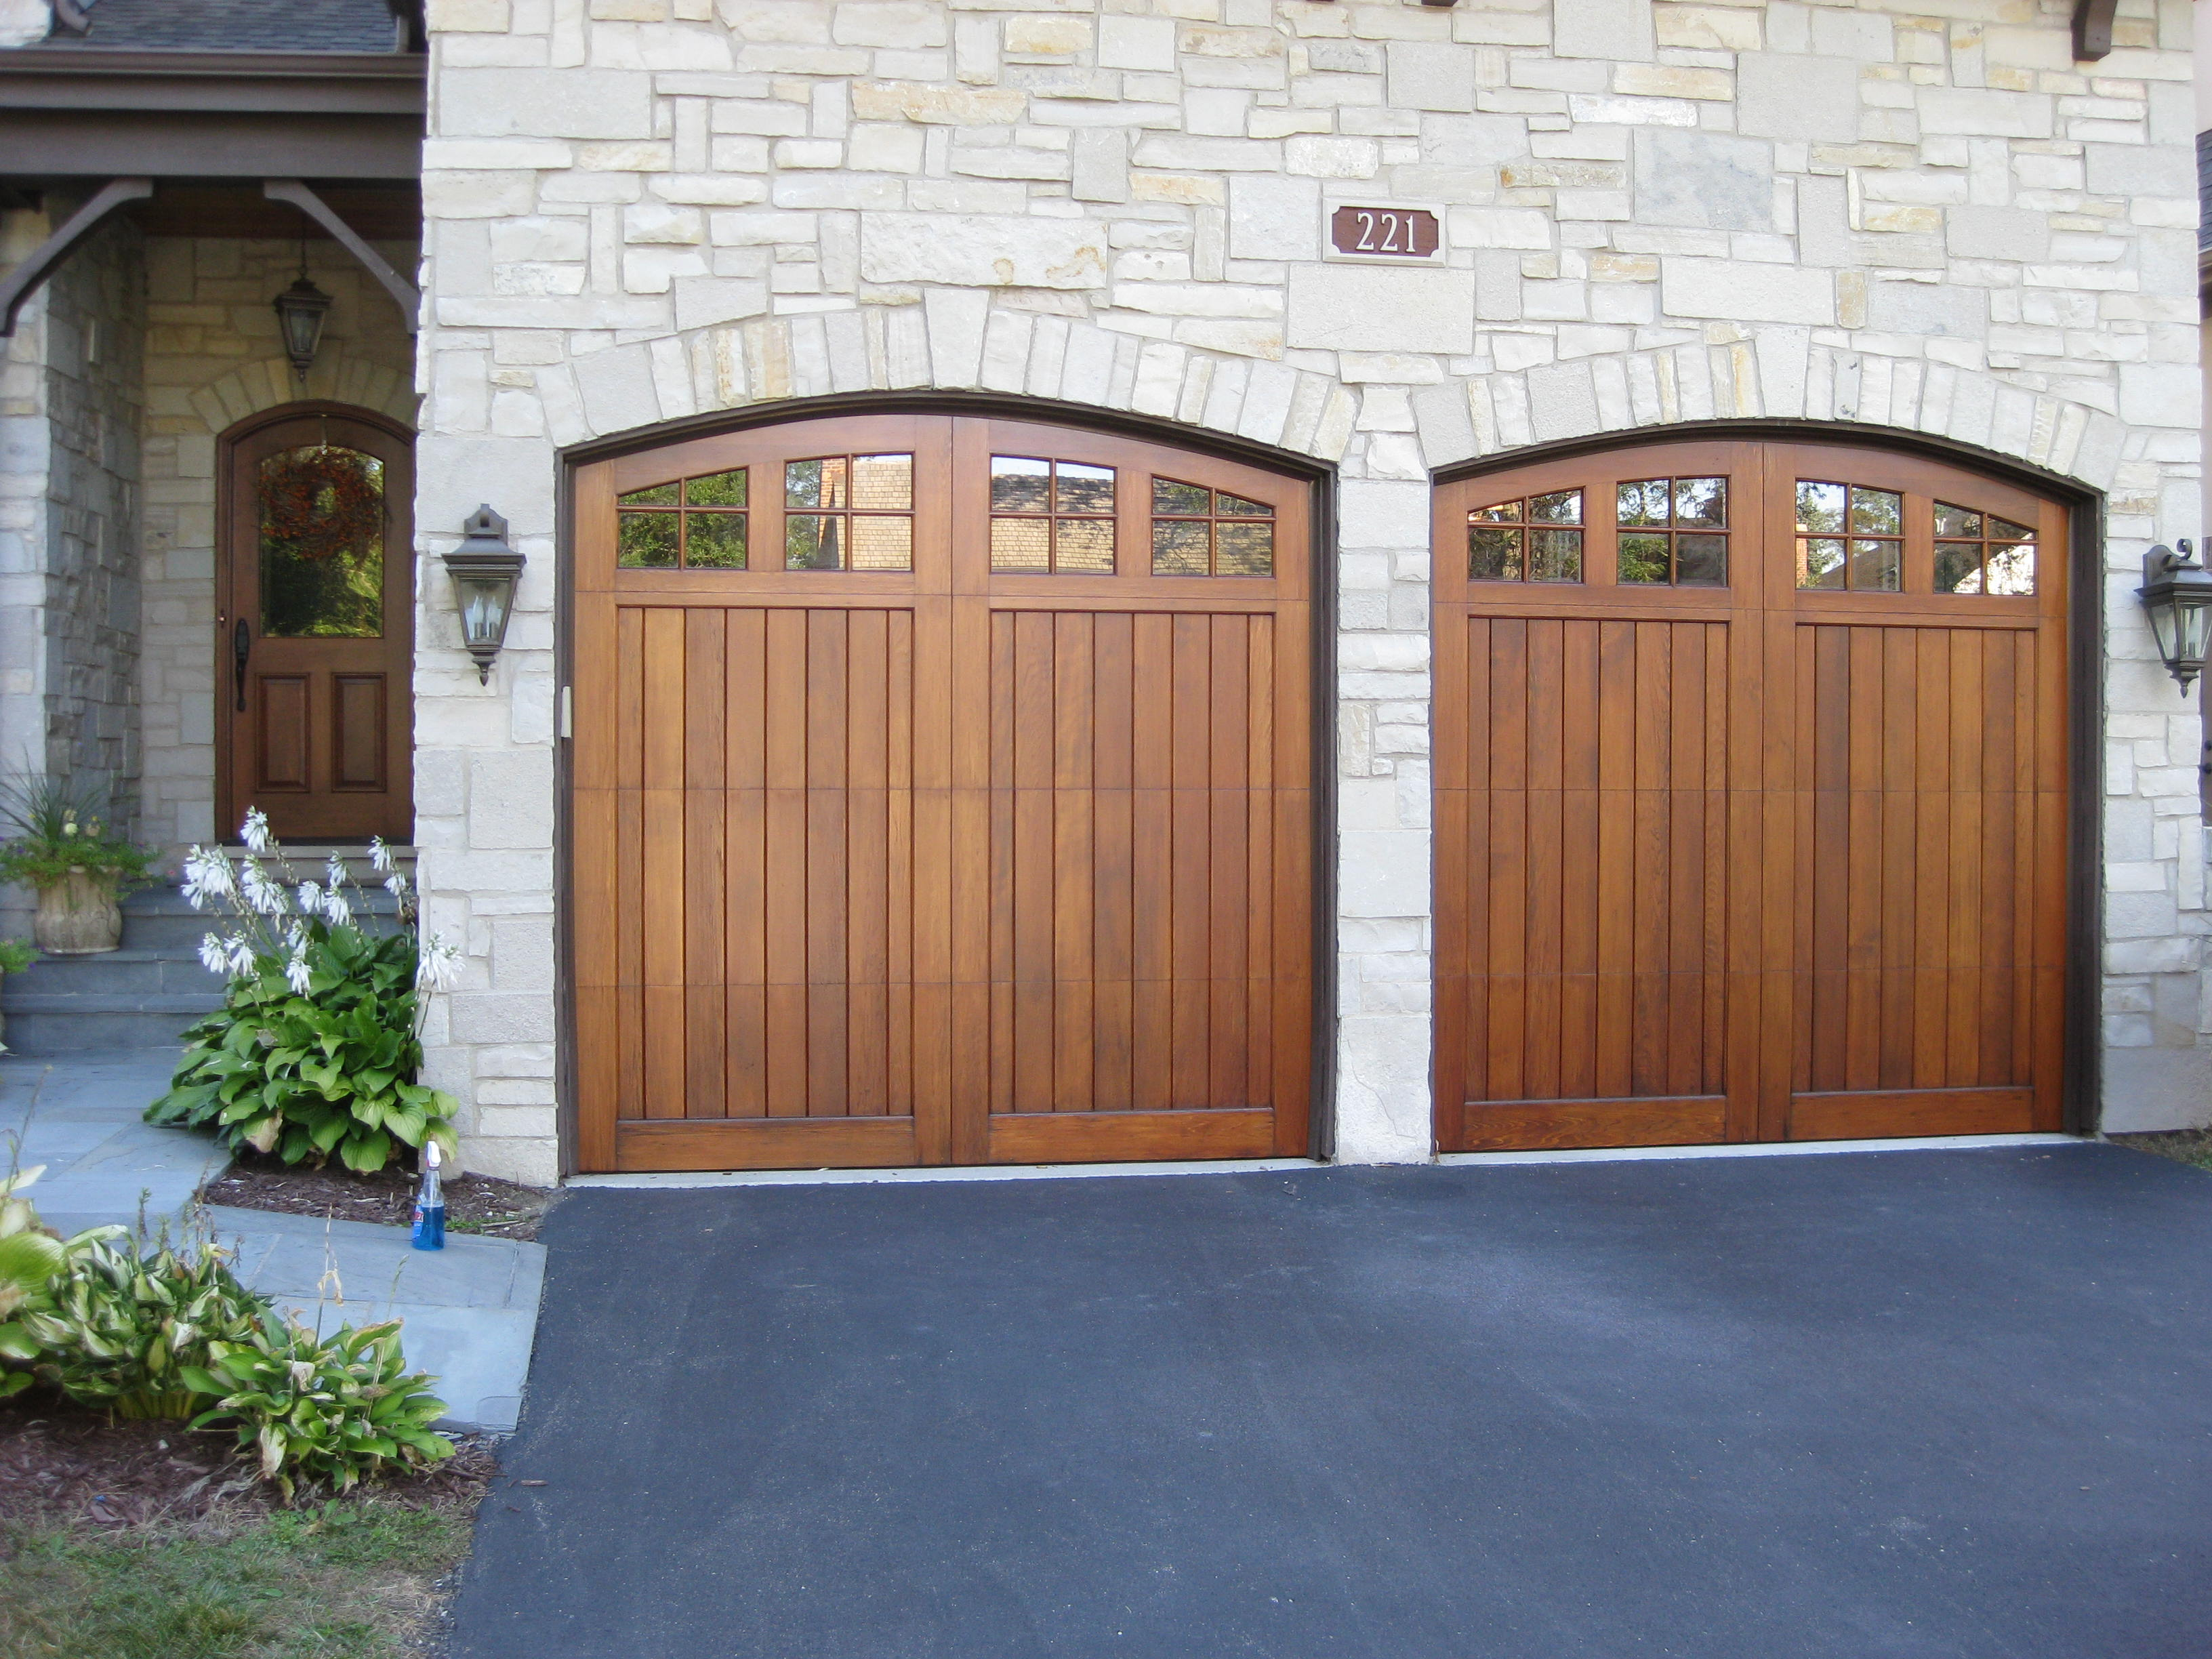 Deciding On Refinishing Wood Garage Doors The Milky Look